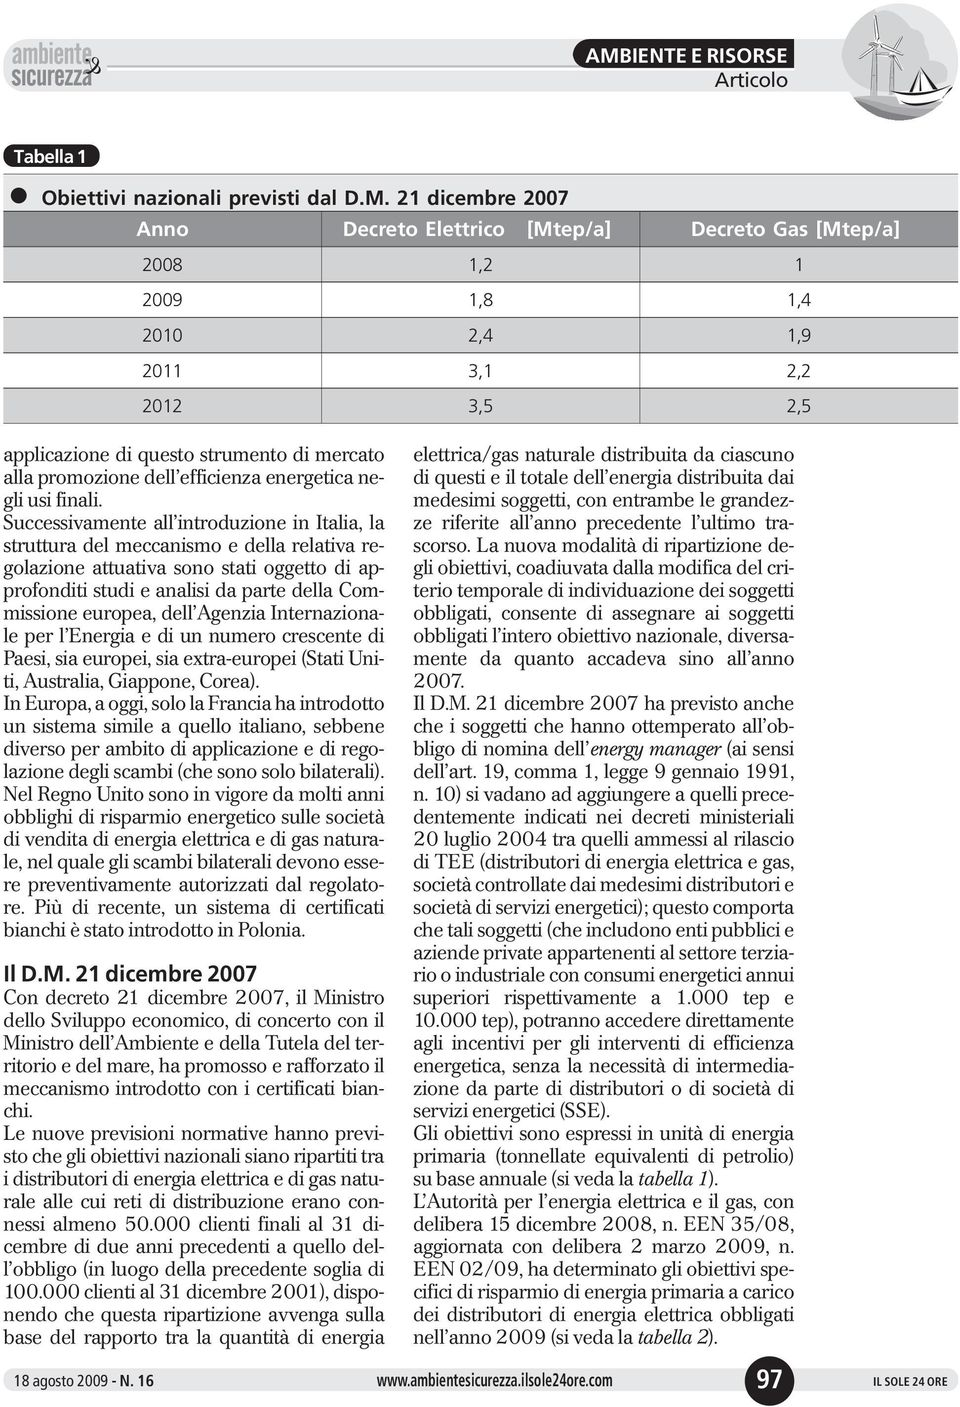 efficienza energetica negli usi finali.